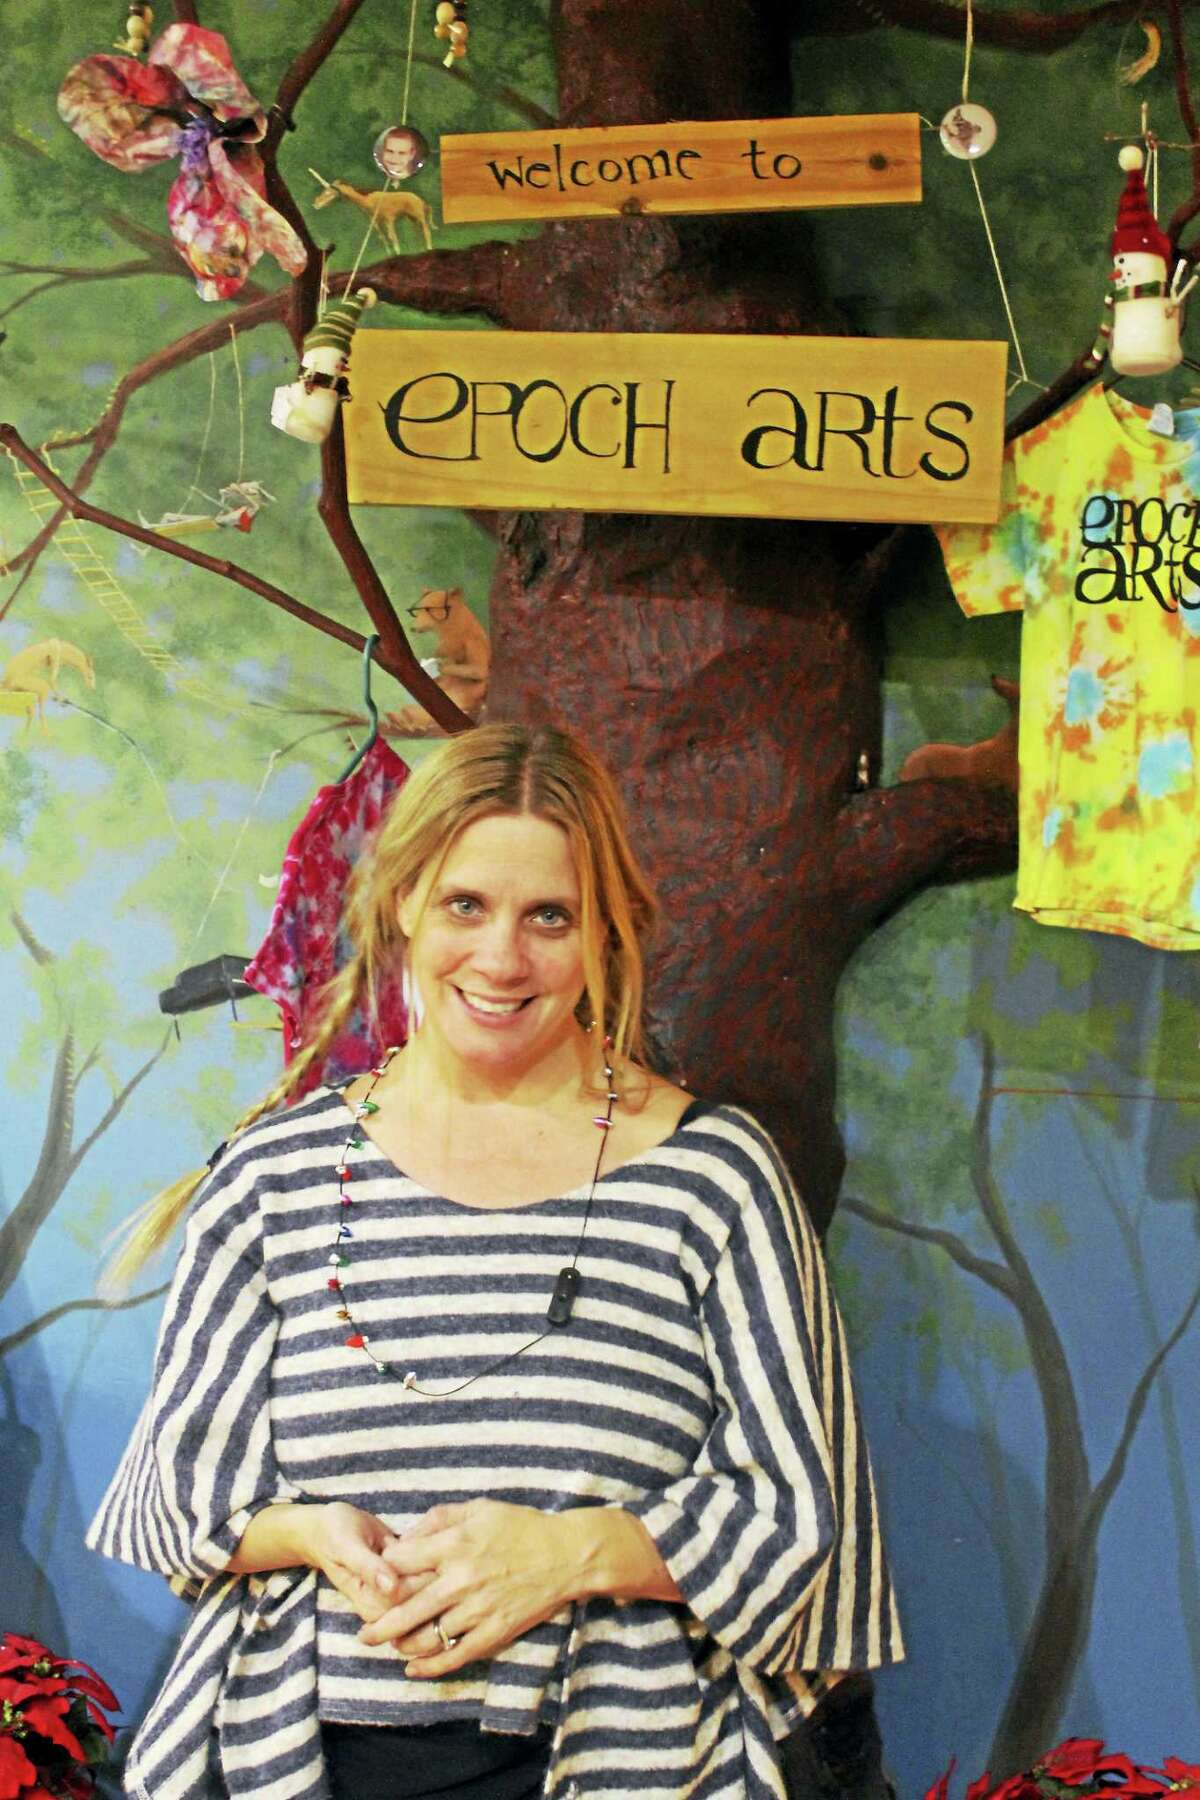 Founder Elizabeth Namen began what is now Epoch Arts in 1998 at the Haddam Neck Grange Hall. The youth organization has flourished for nearly two decades, now occupying the 42,000-square-foot former bell and toy factory, N.N. Hill Brass Company, on Skinner Road.